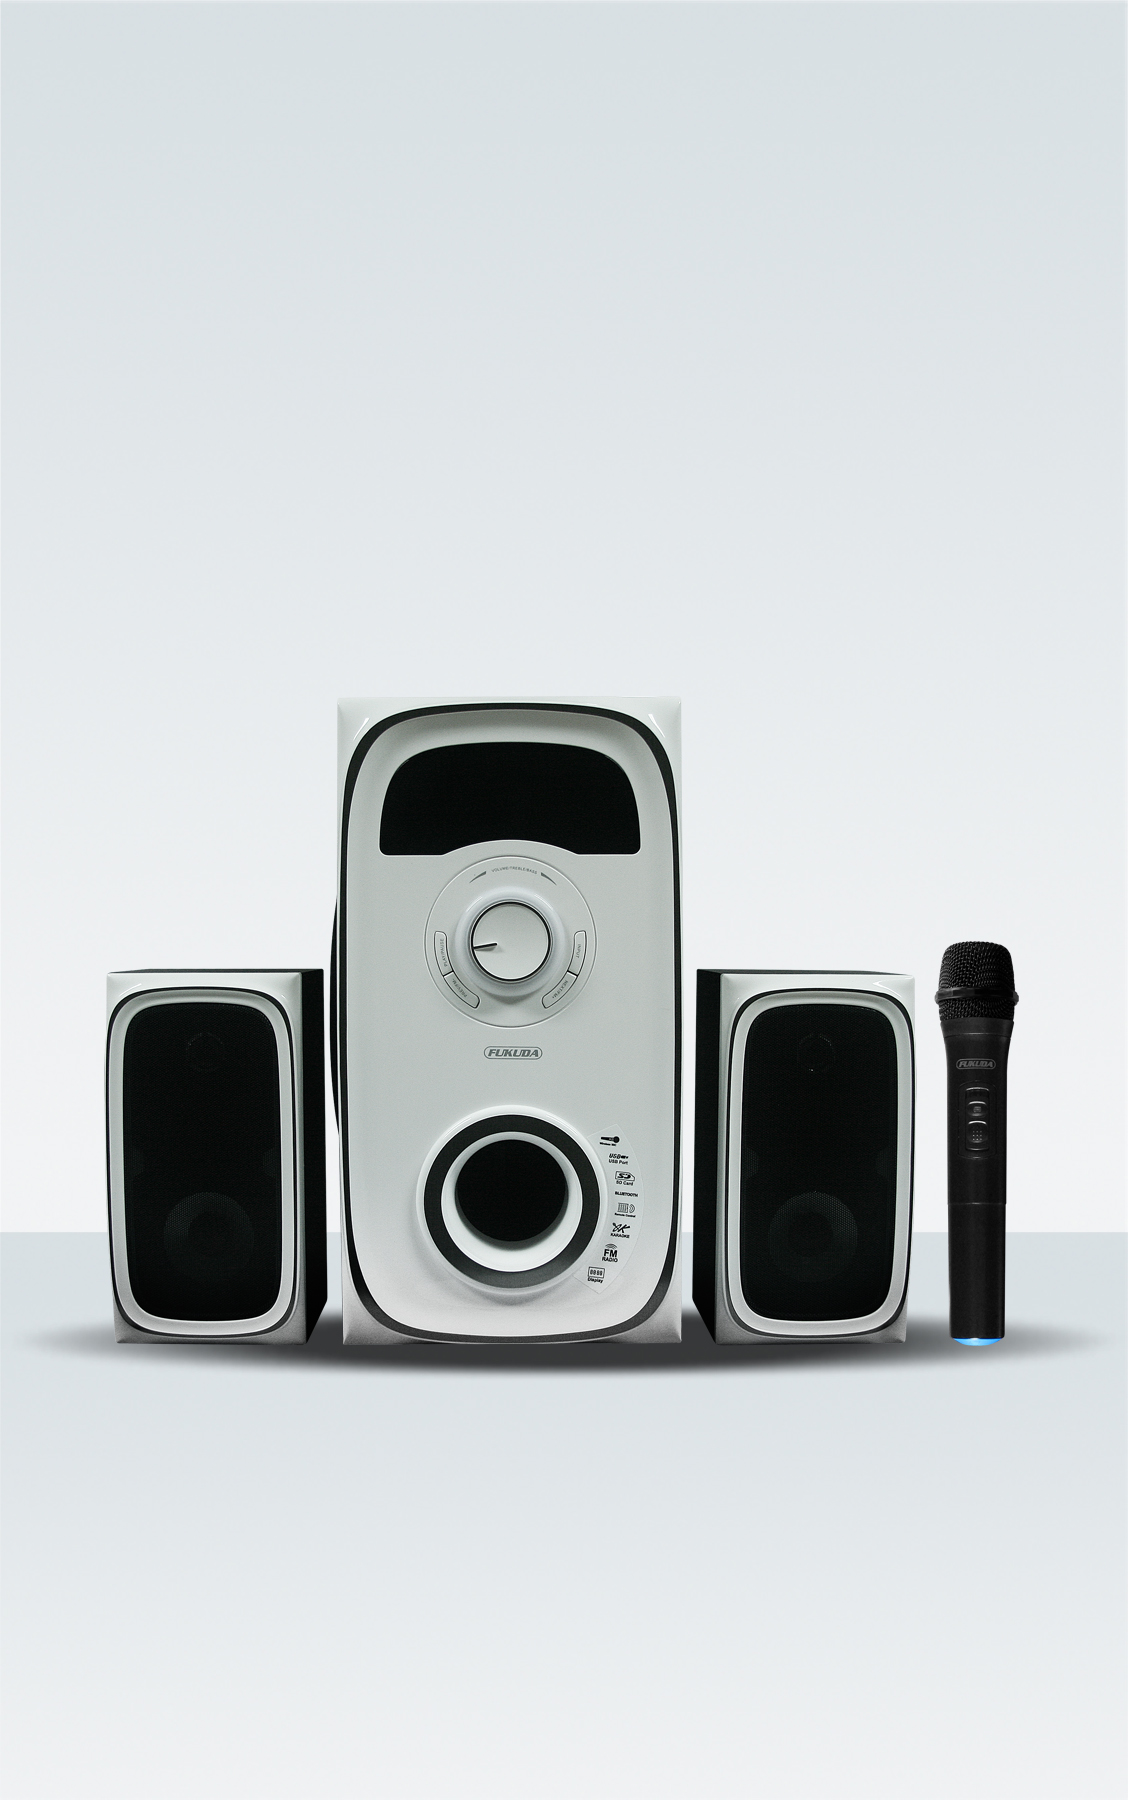 2.1 CH HOME THEATER SPEAKER WITH WIRELESS MICROPHONE 80W RMS